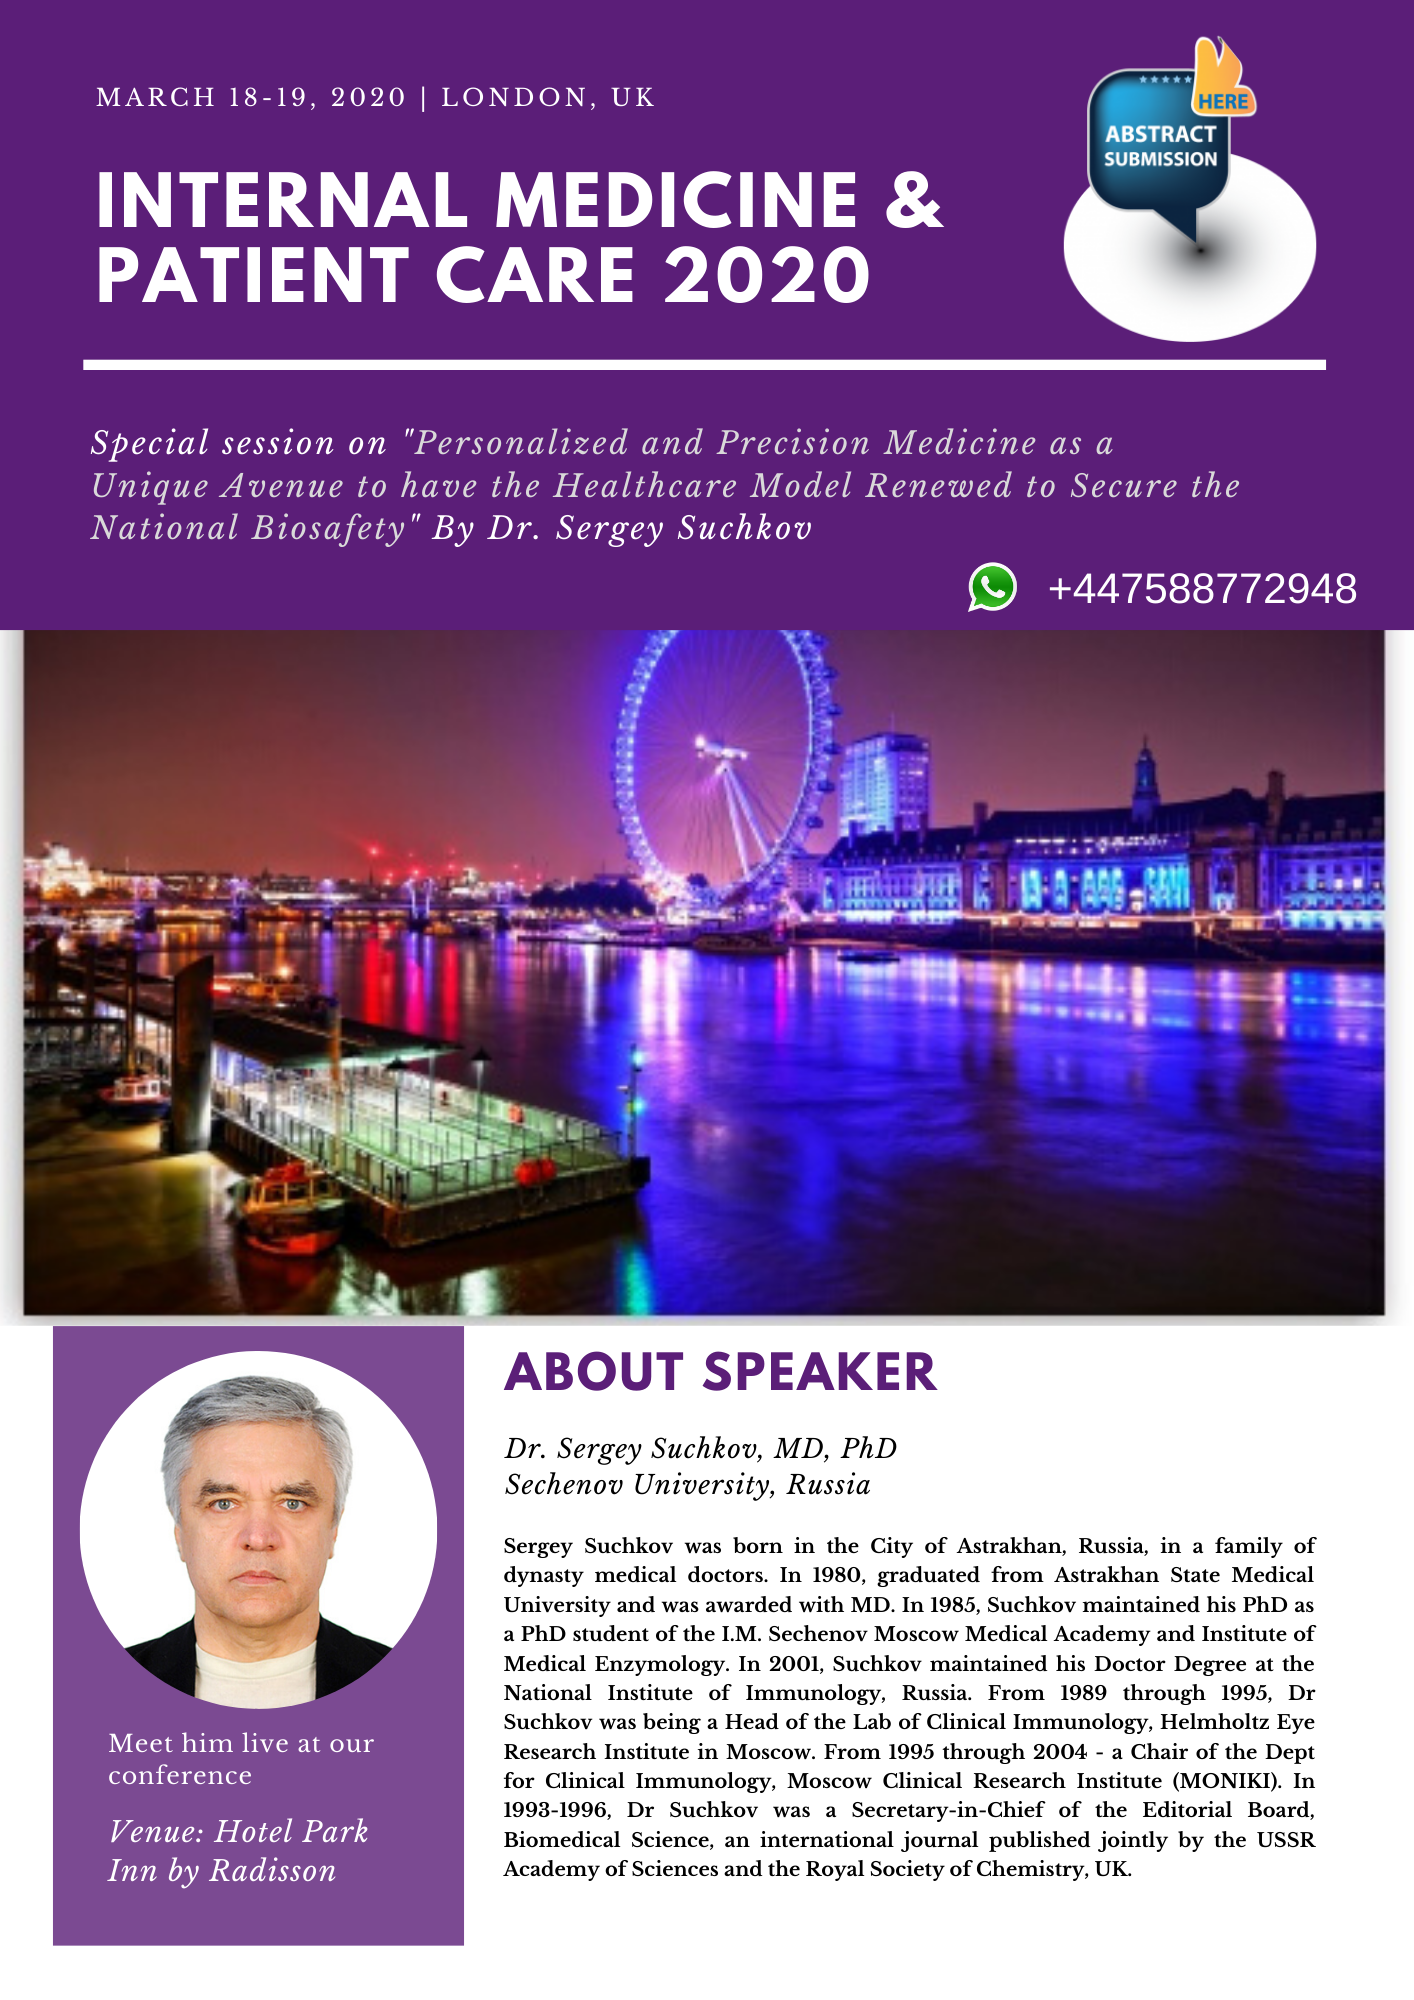 Come and learn INTERNAL MEDICINE 2020 London, UK Visit